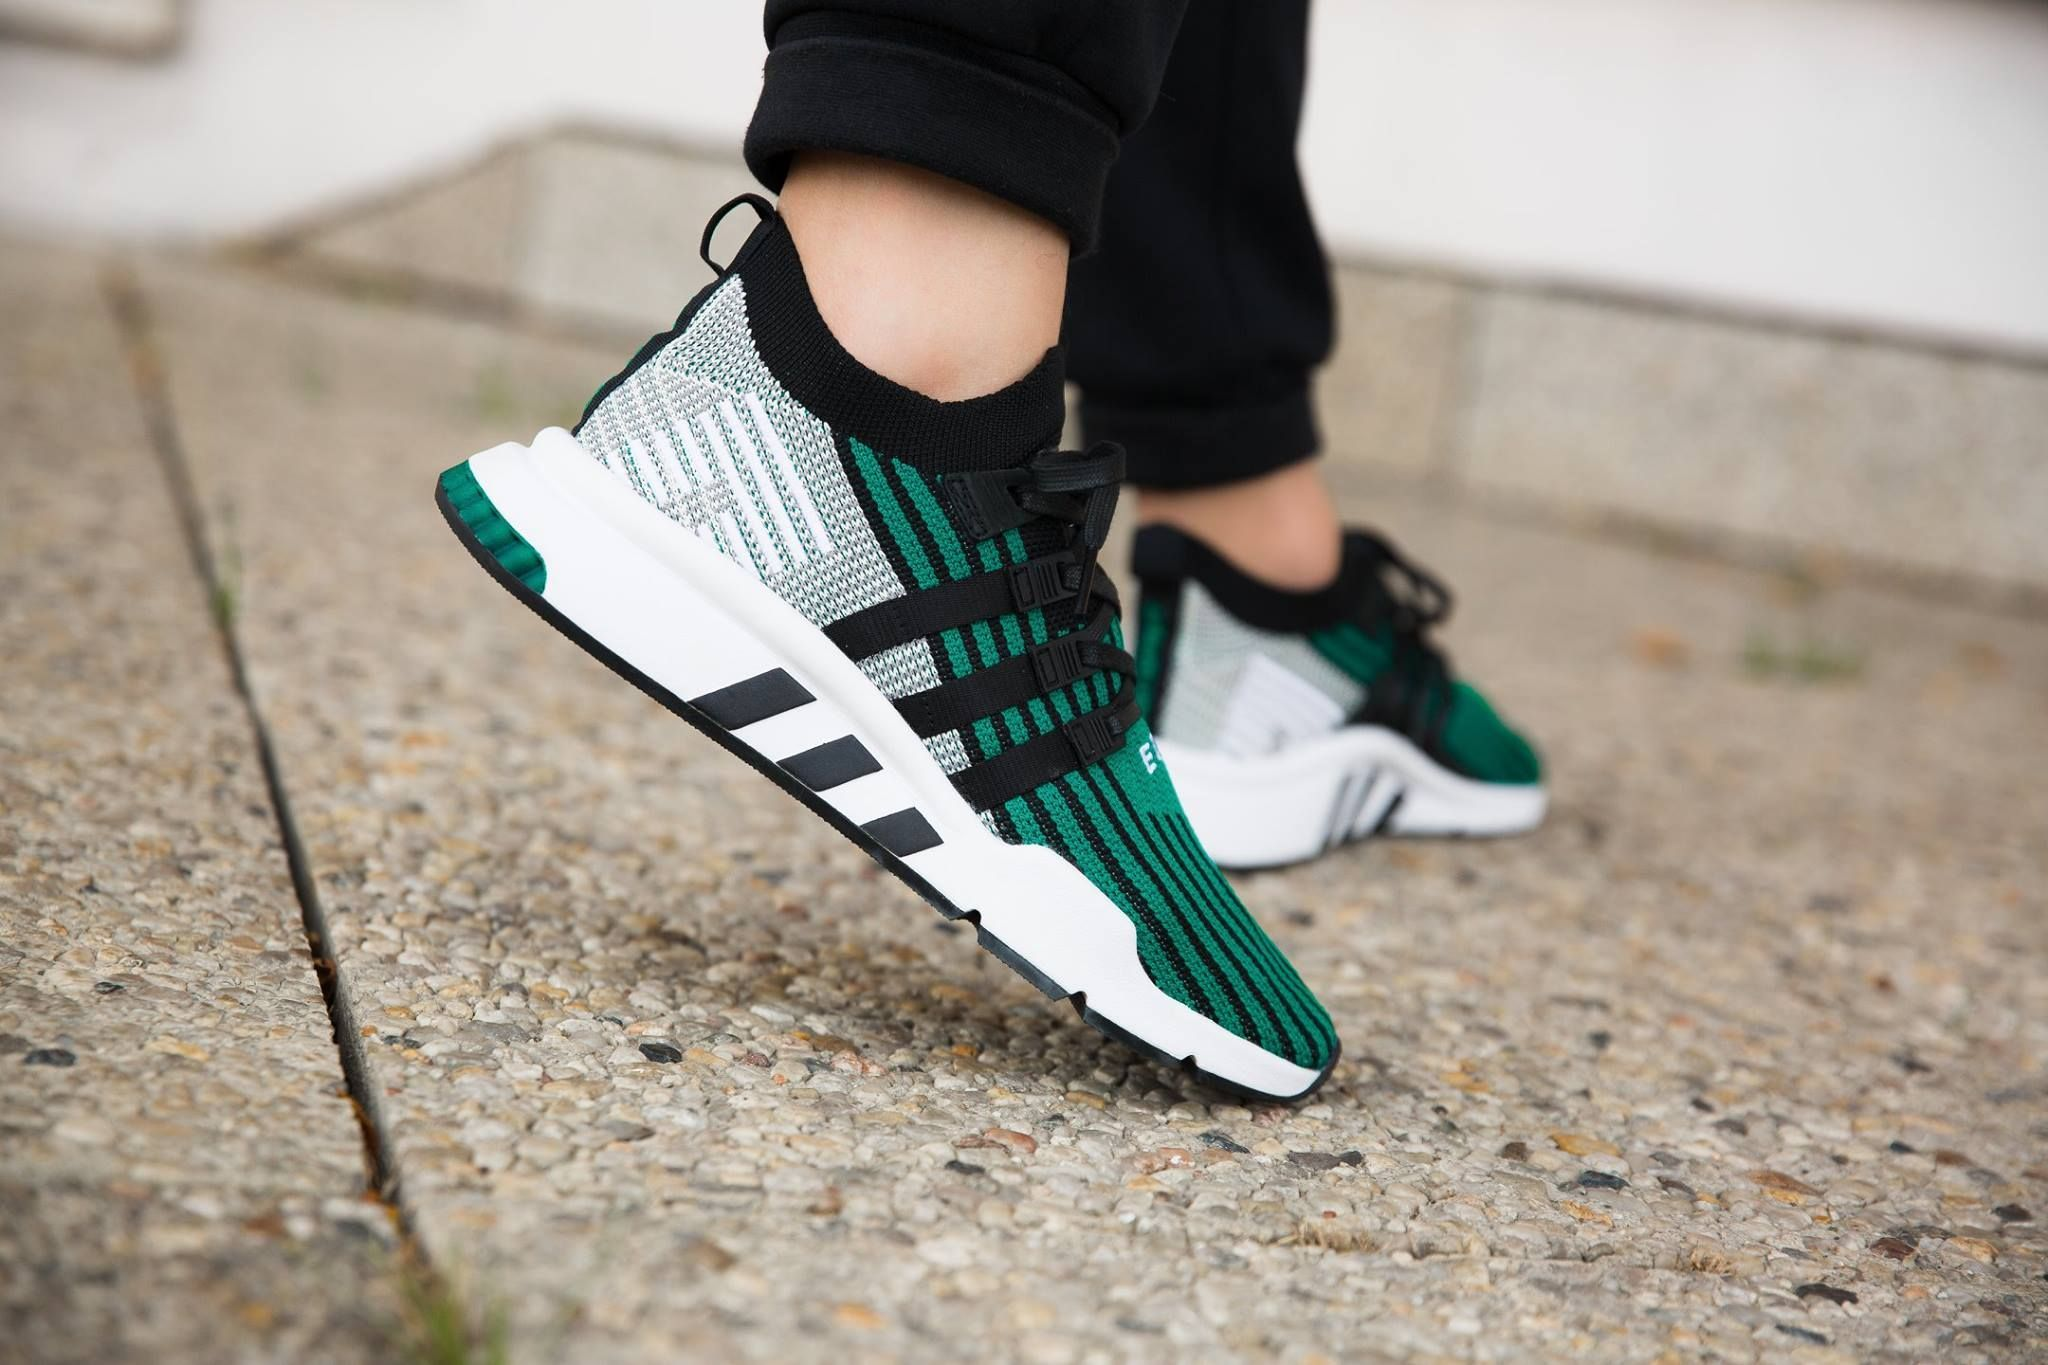 low priced c719e 48897 Adidas Originals, Sneaker Games, Ootd, Latest Sneakers, Adidas Sneakers,  Shoe Game